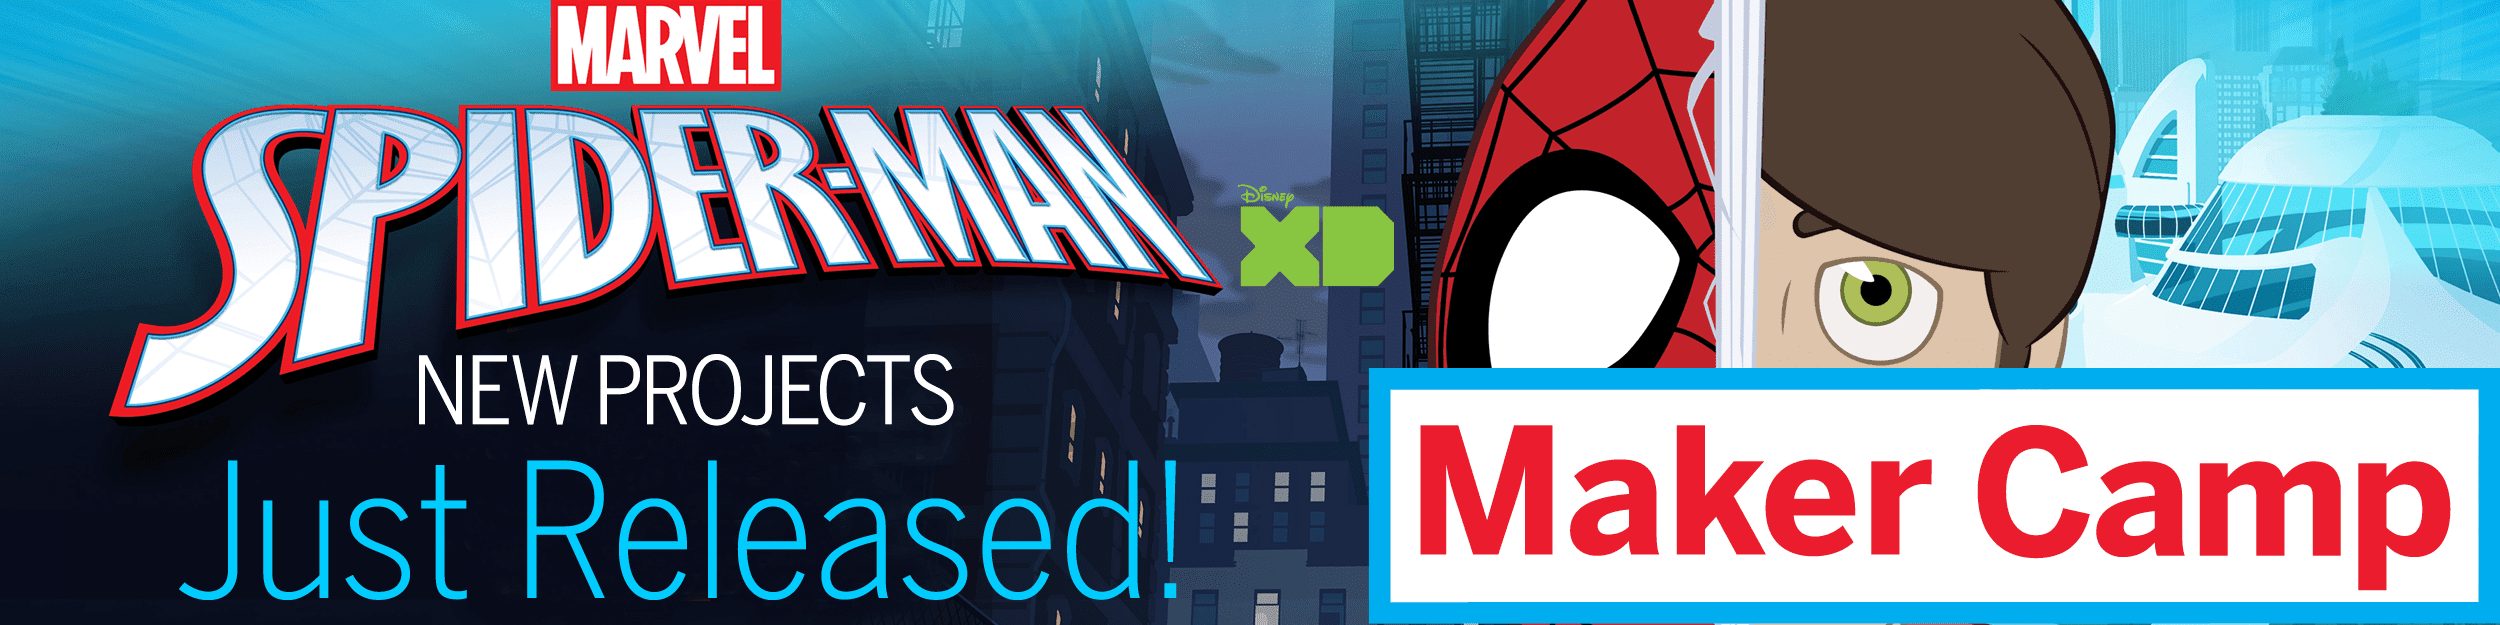 Maker Camp - Marvel's Spider-Man Projects